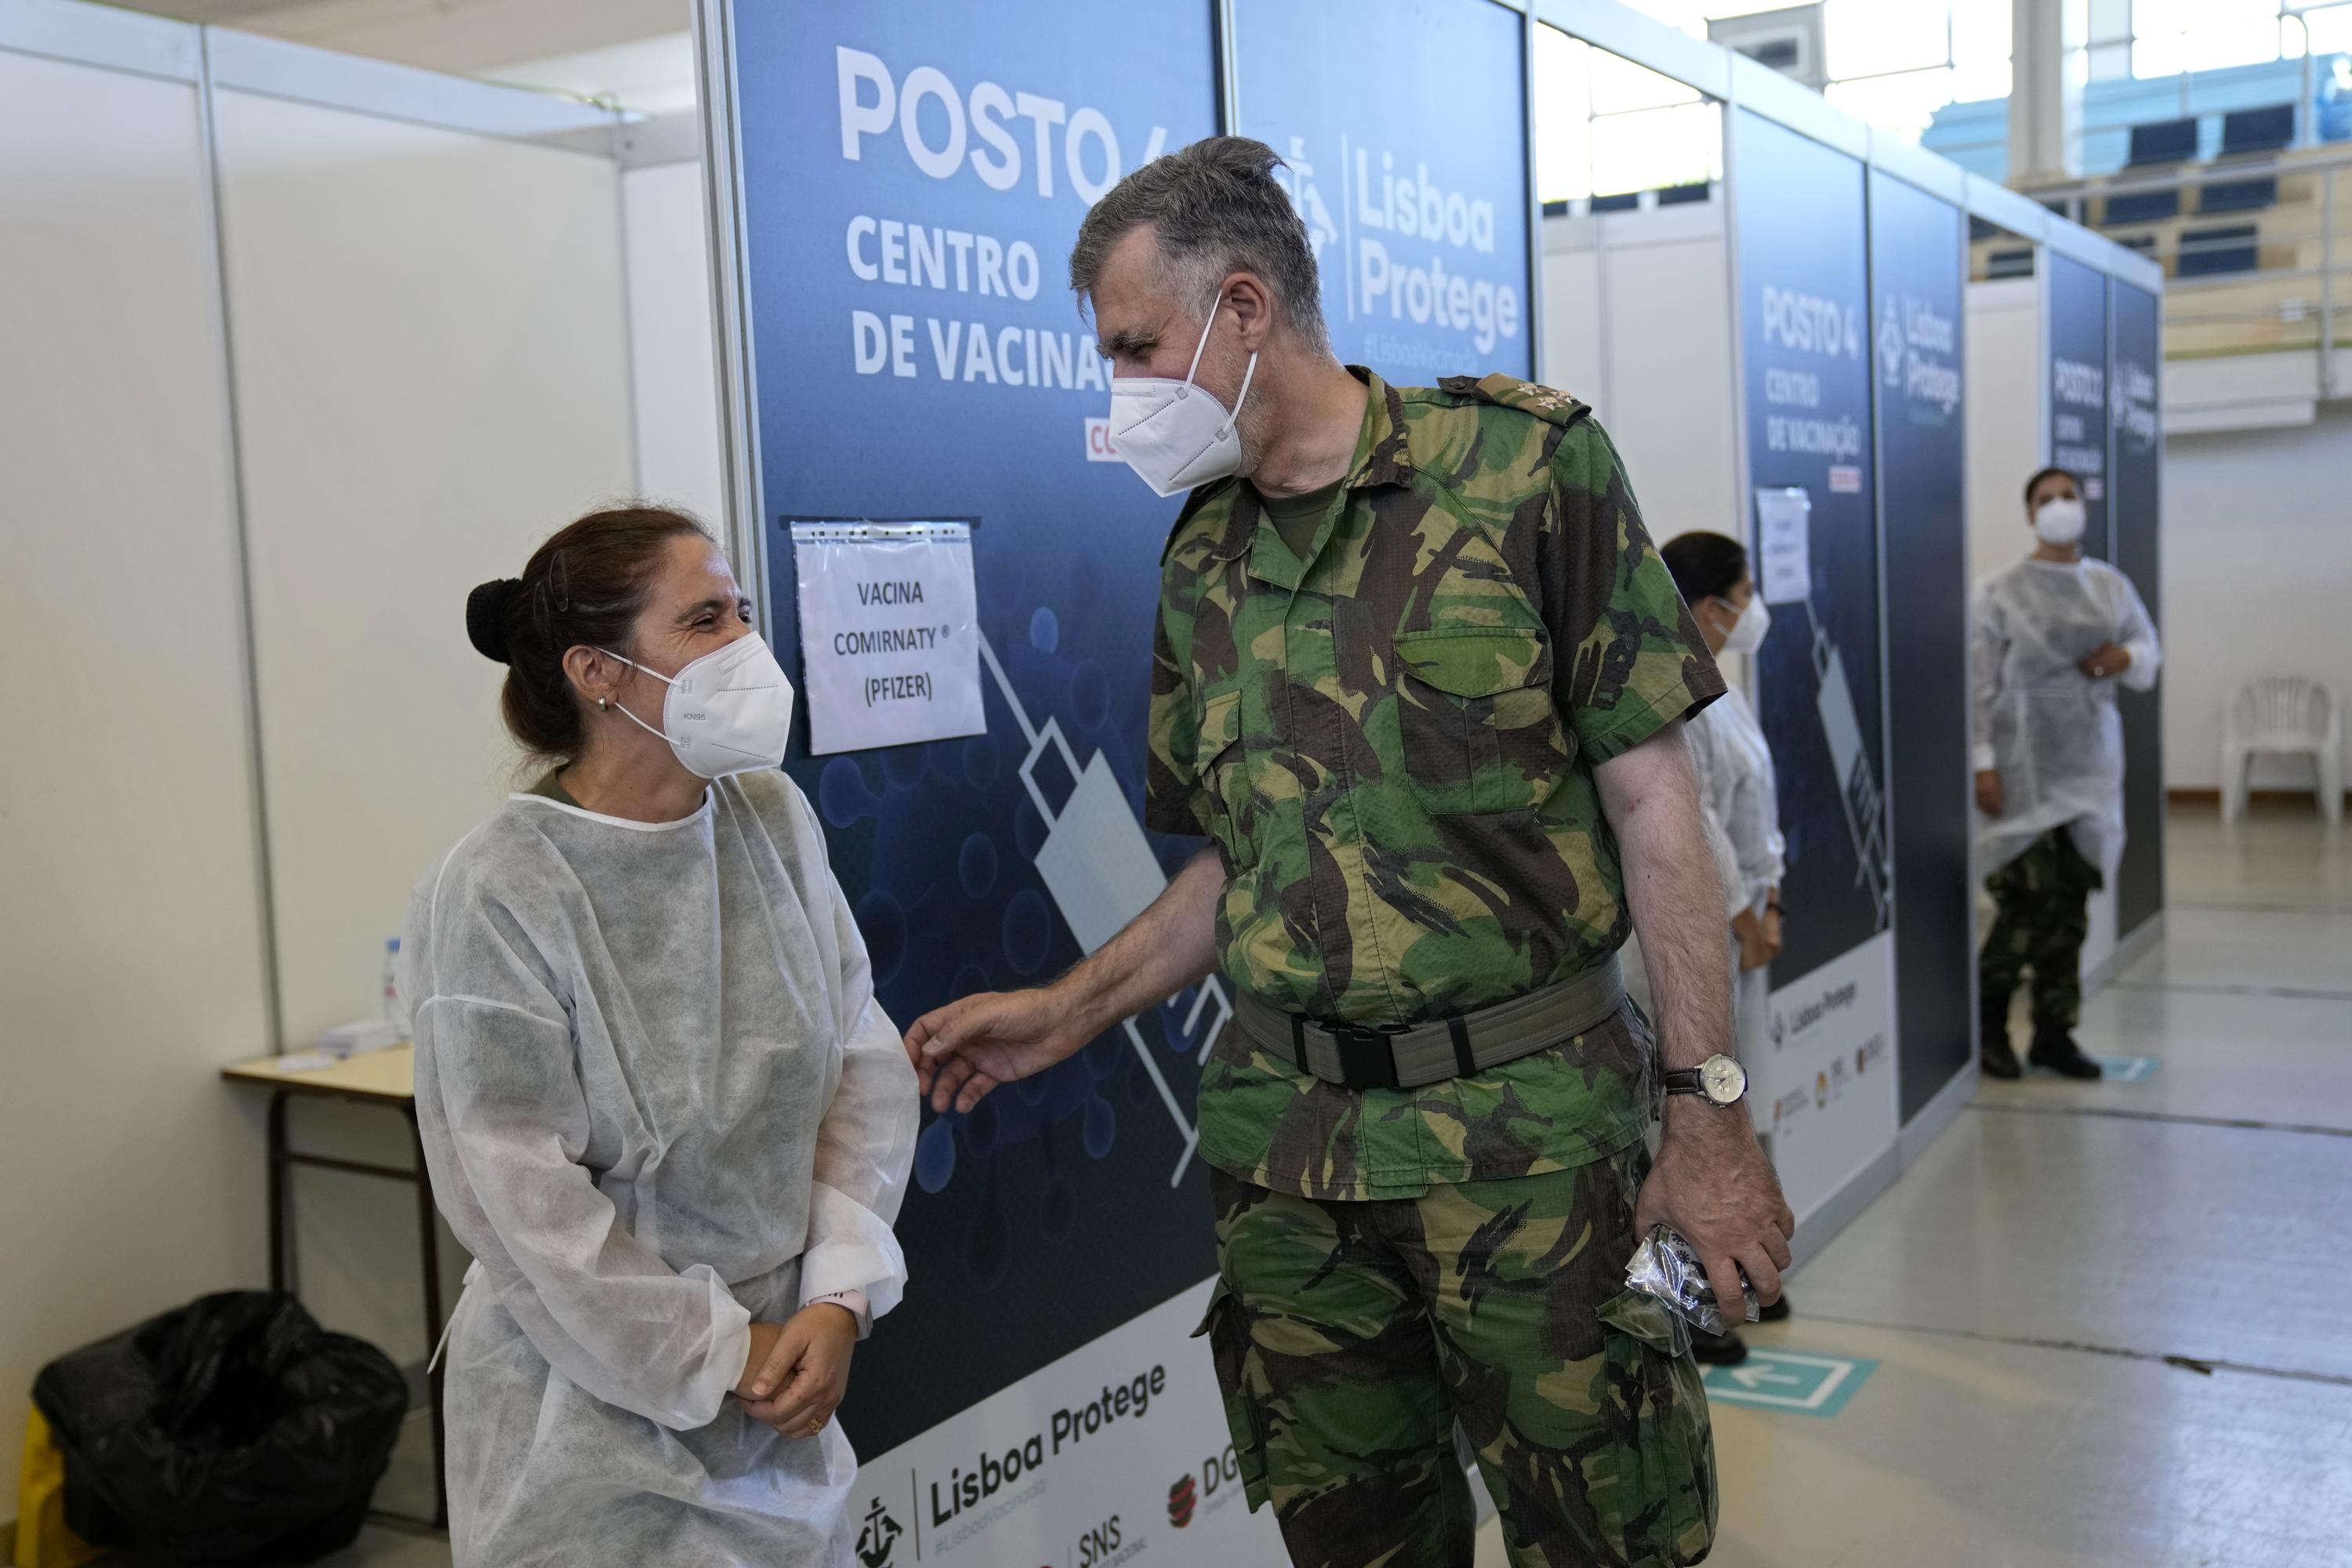 Image Naval officer wins praise for Portugal's vaccine rollout